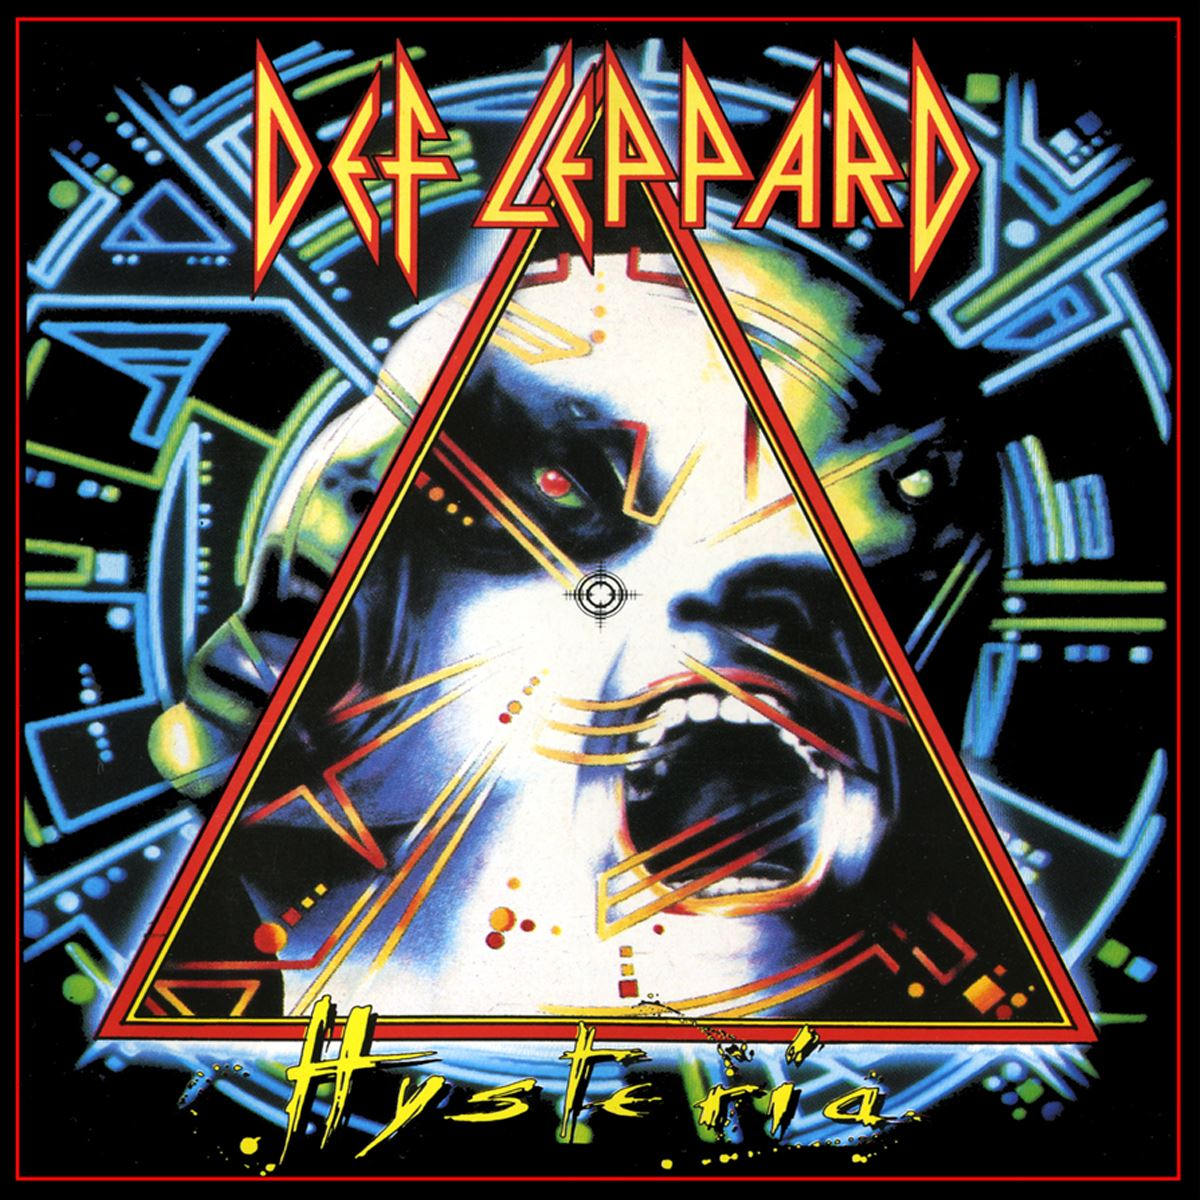 CD3 Ded Leppard Hysteria Remastered